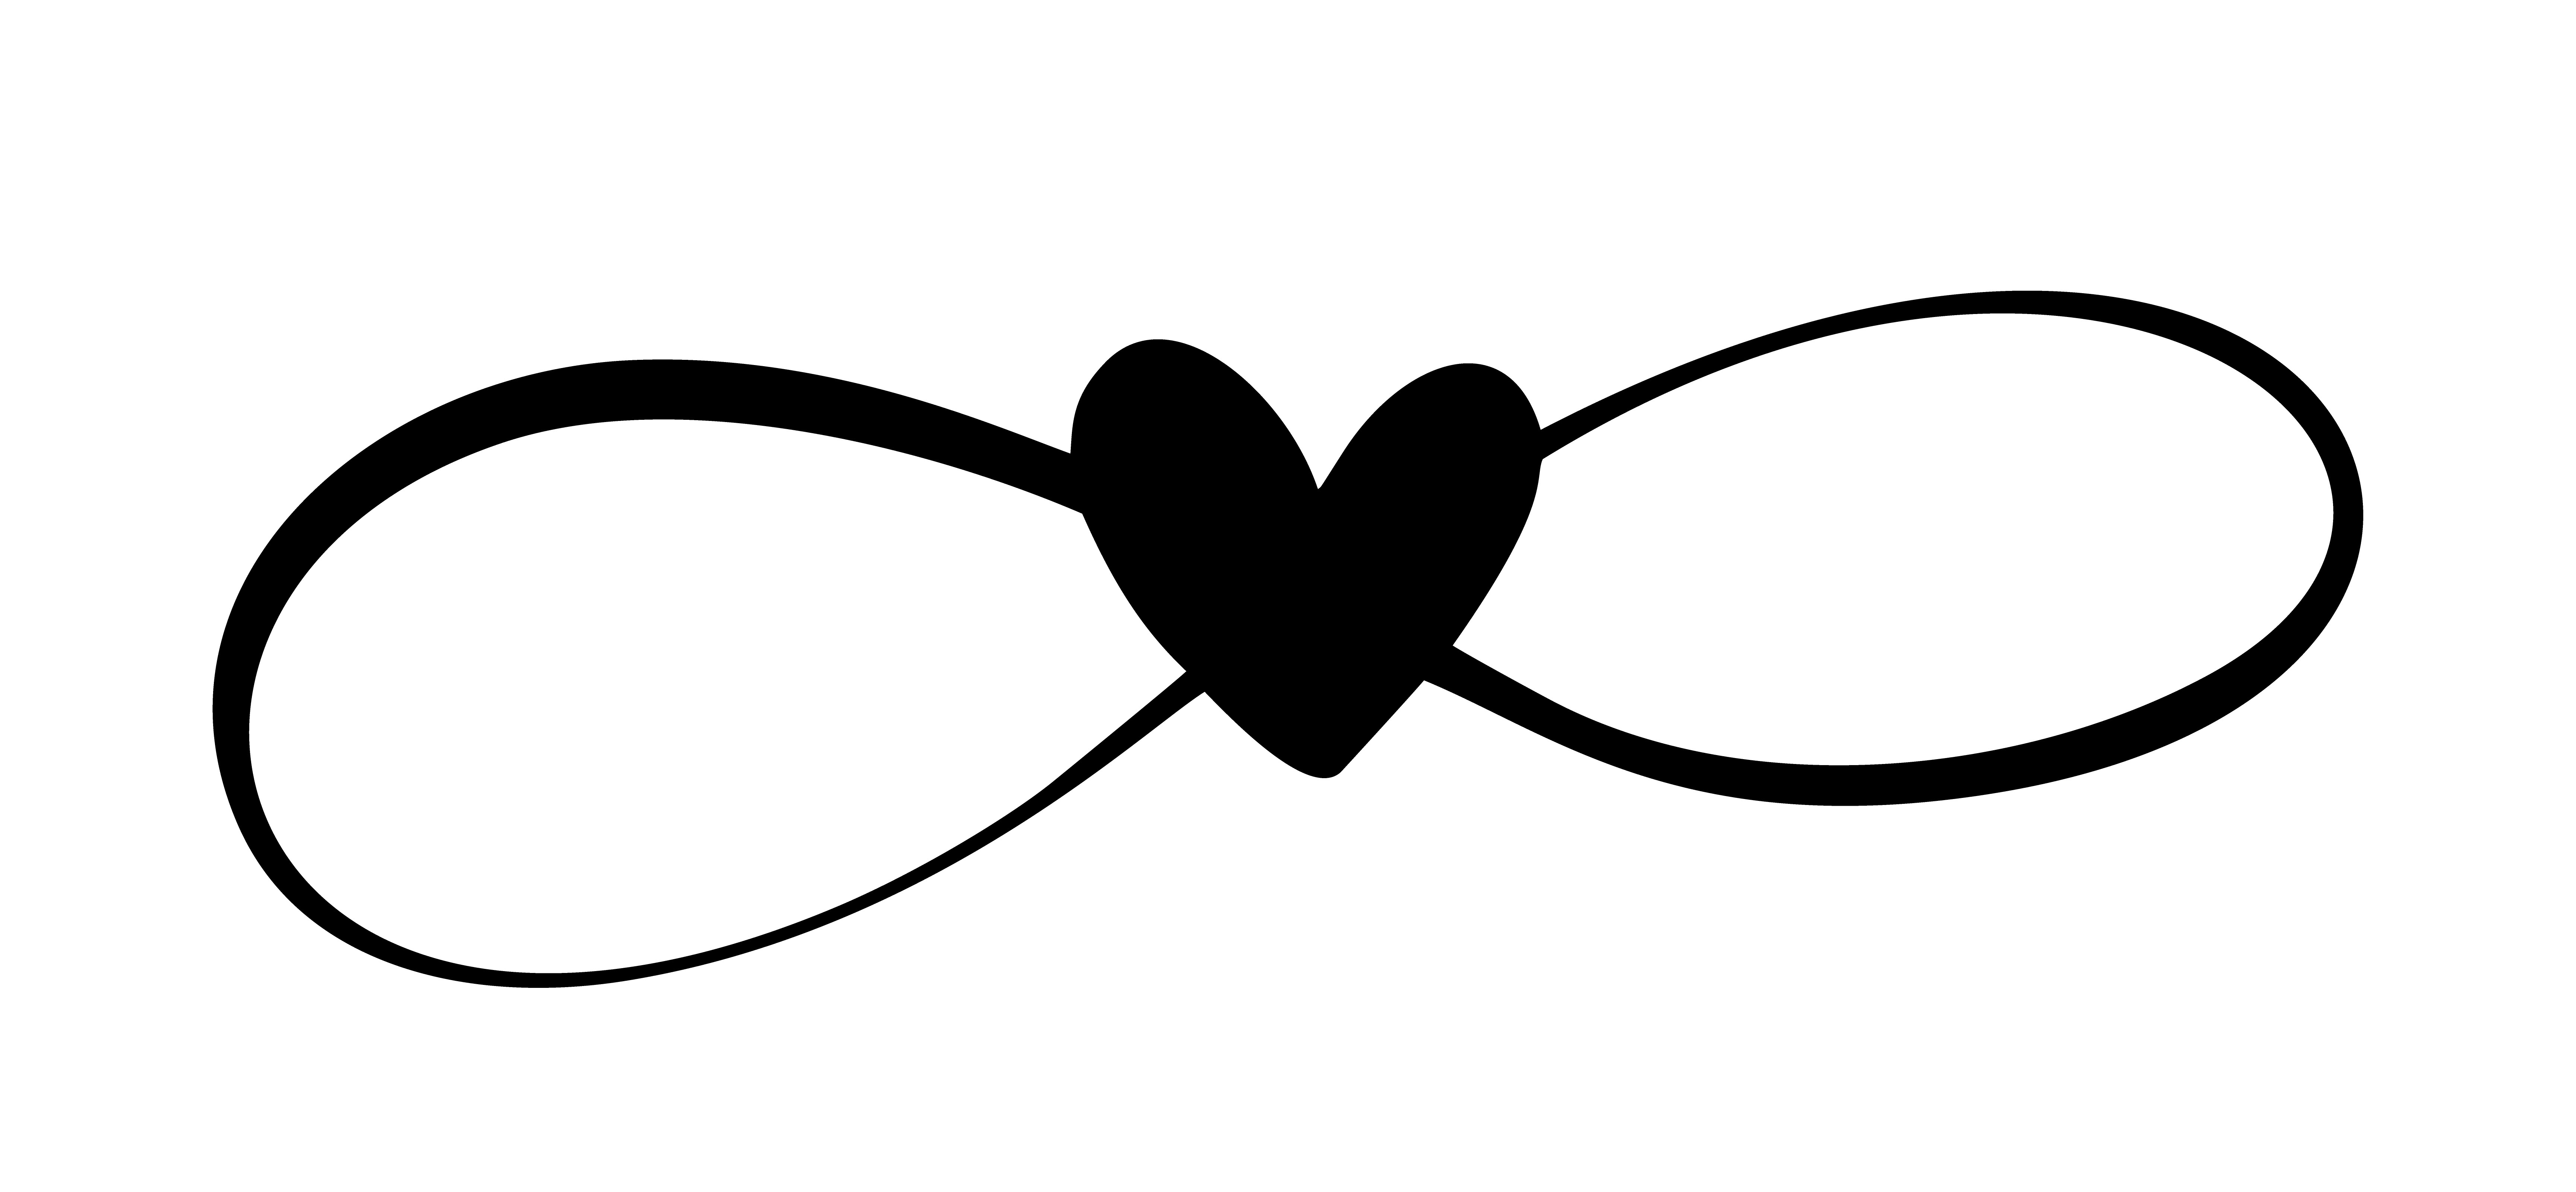 Love heart In the sign of infinity. Sign on postcard to